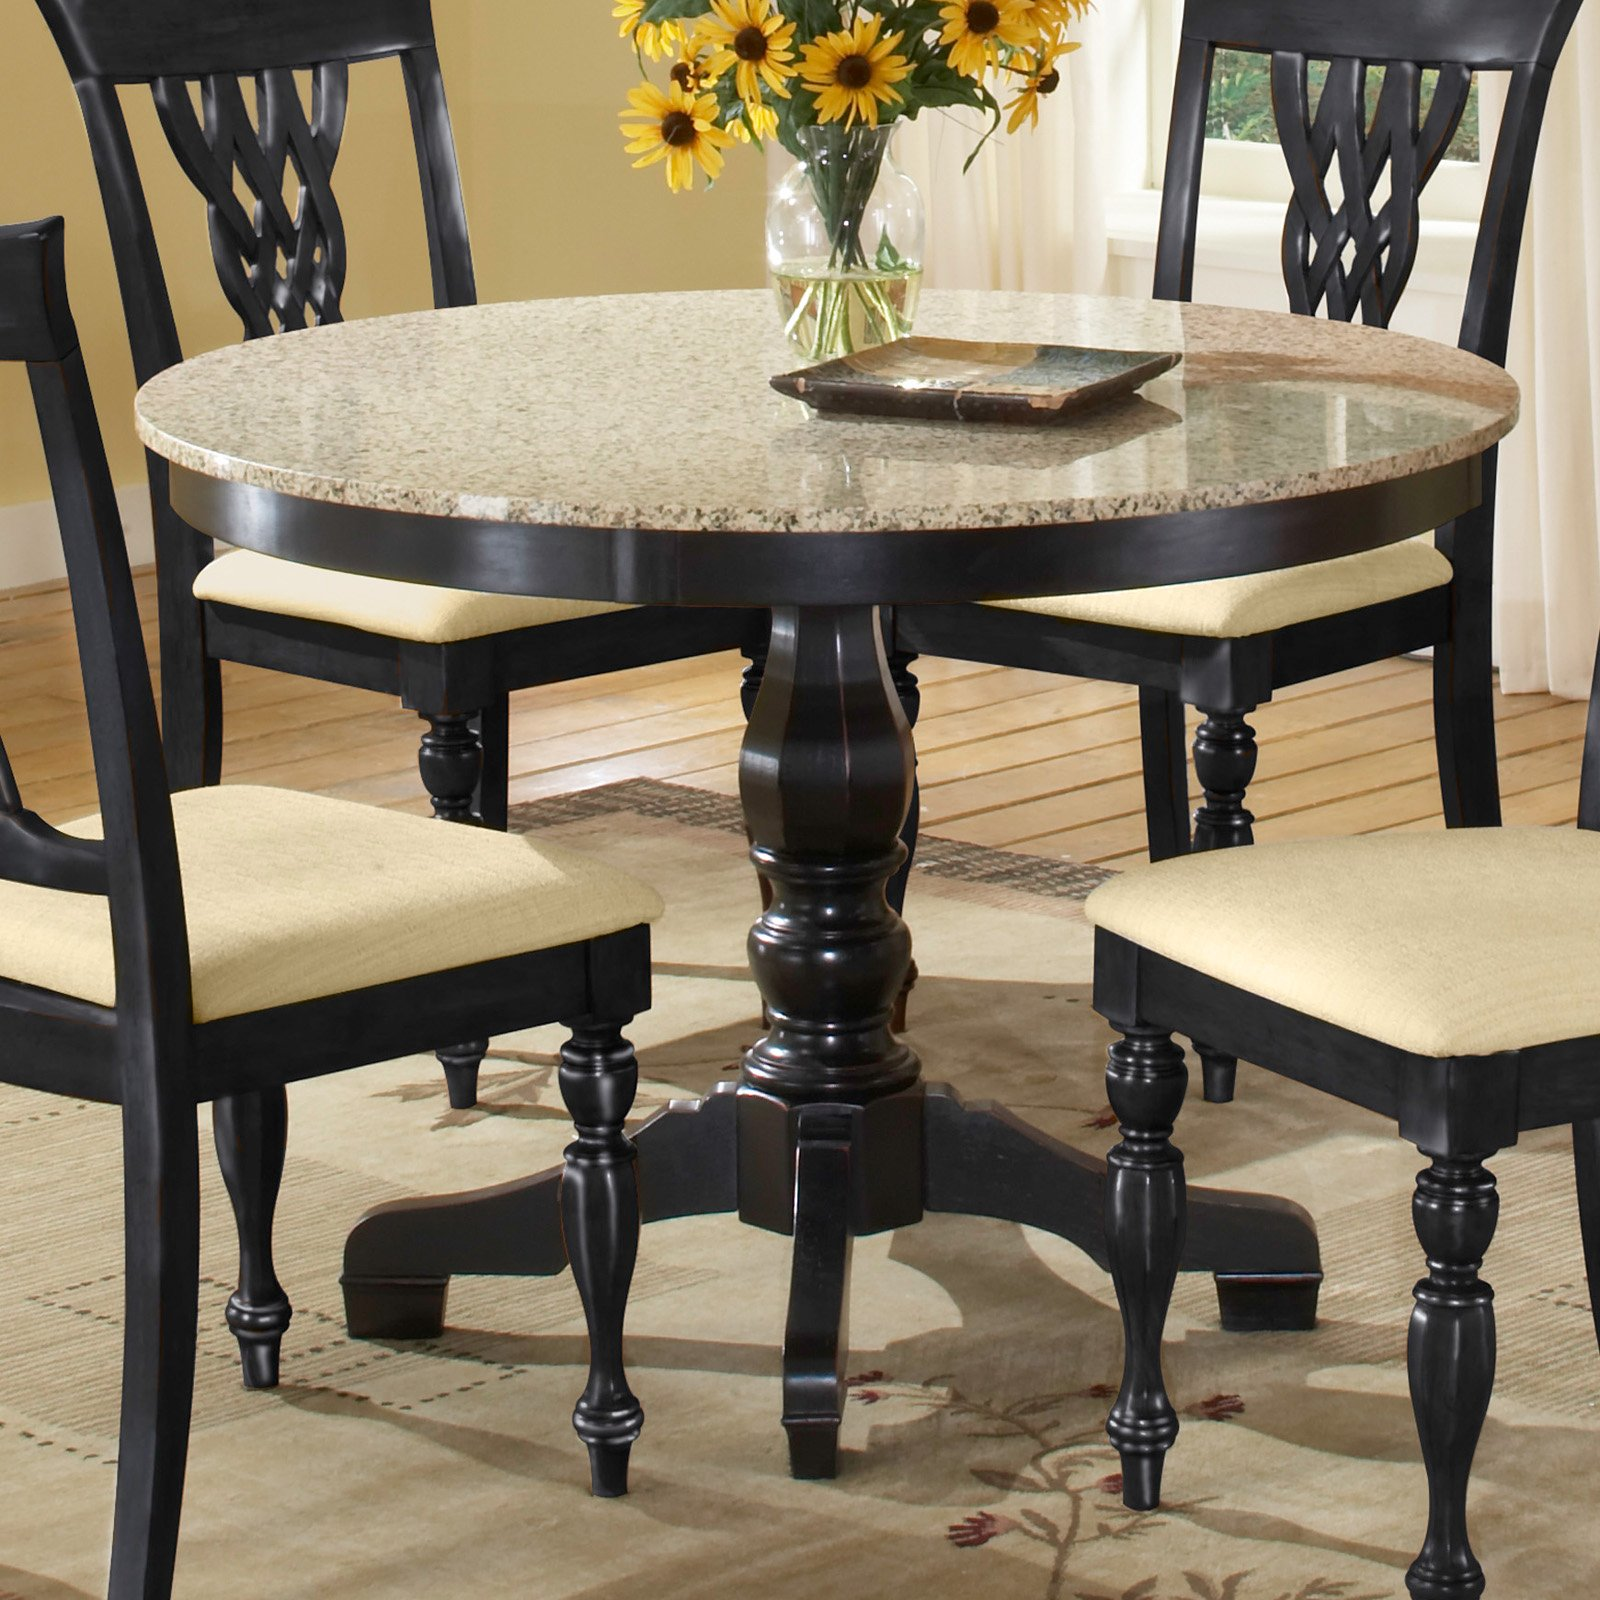 furniture antique white pedestal accent table dining set best southbaynorton interior home small round kitchen and chairs grey room large gloss with leaf long black marble all